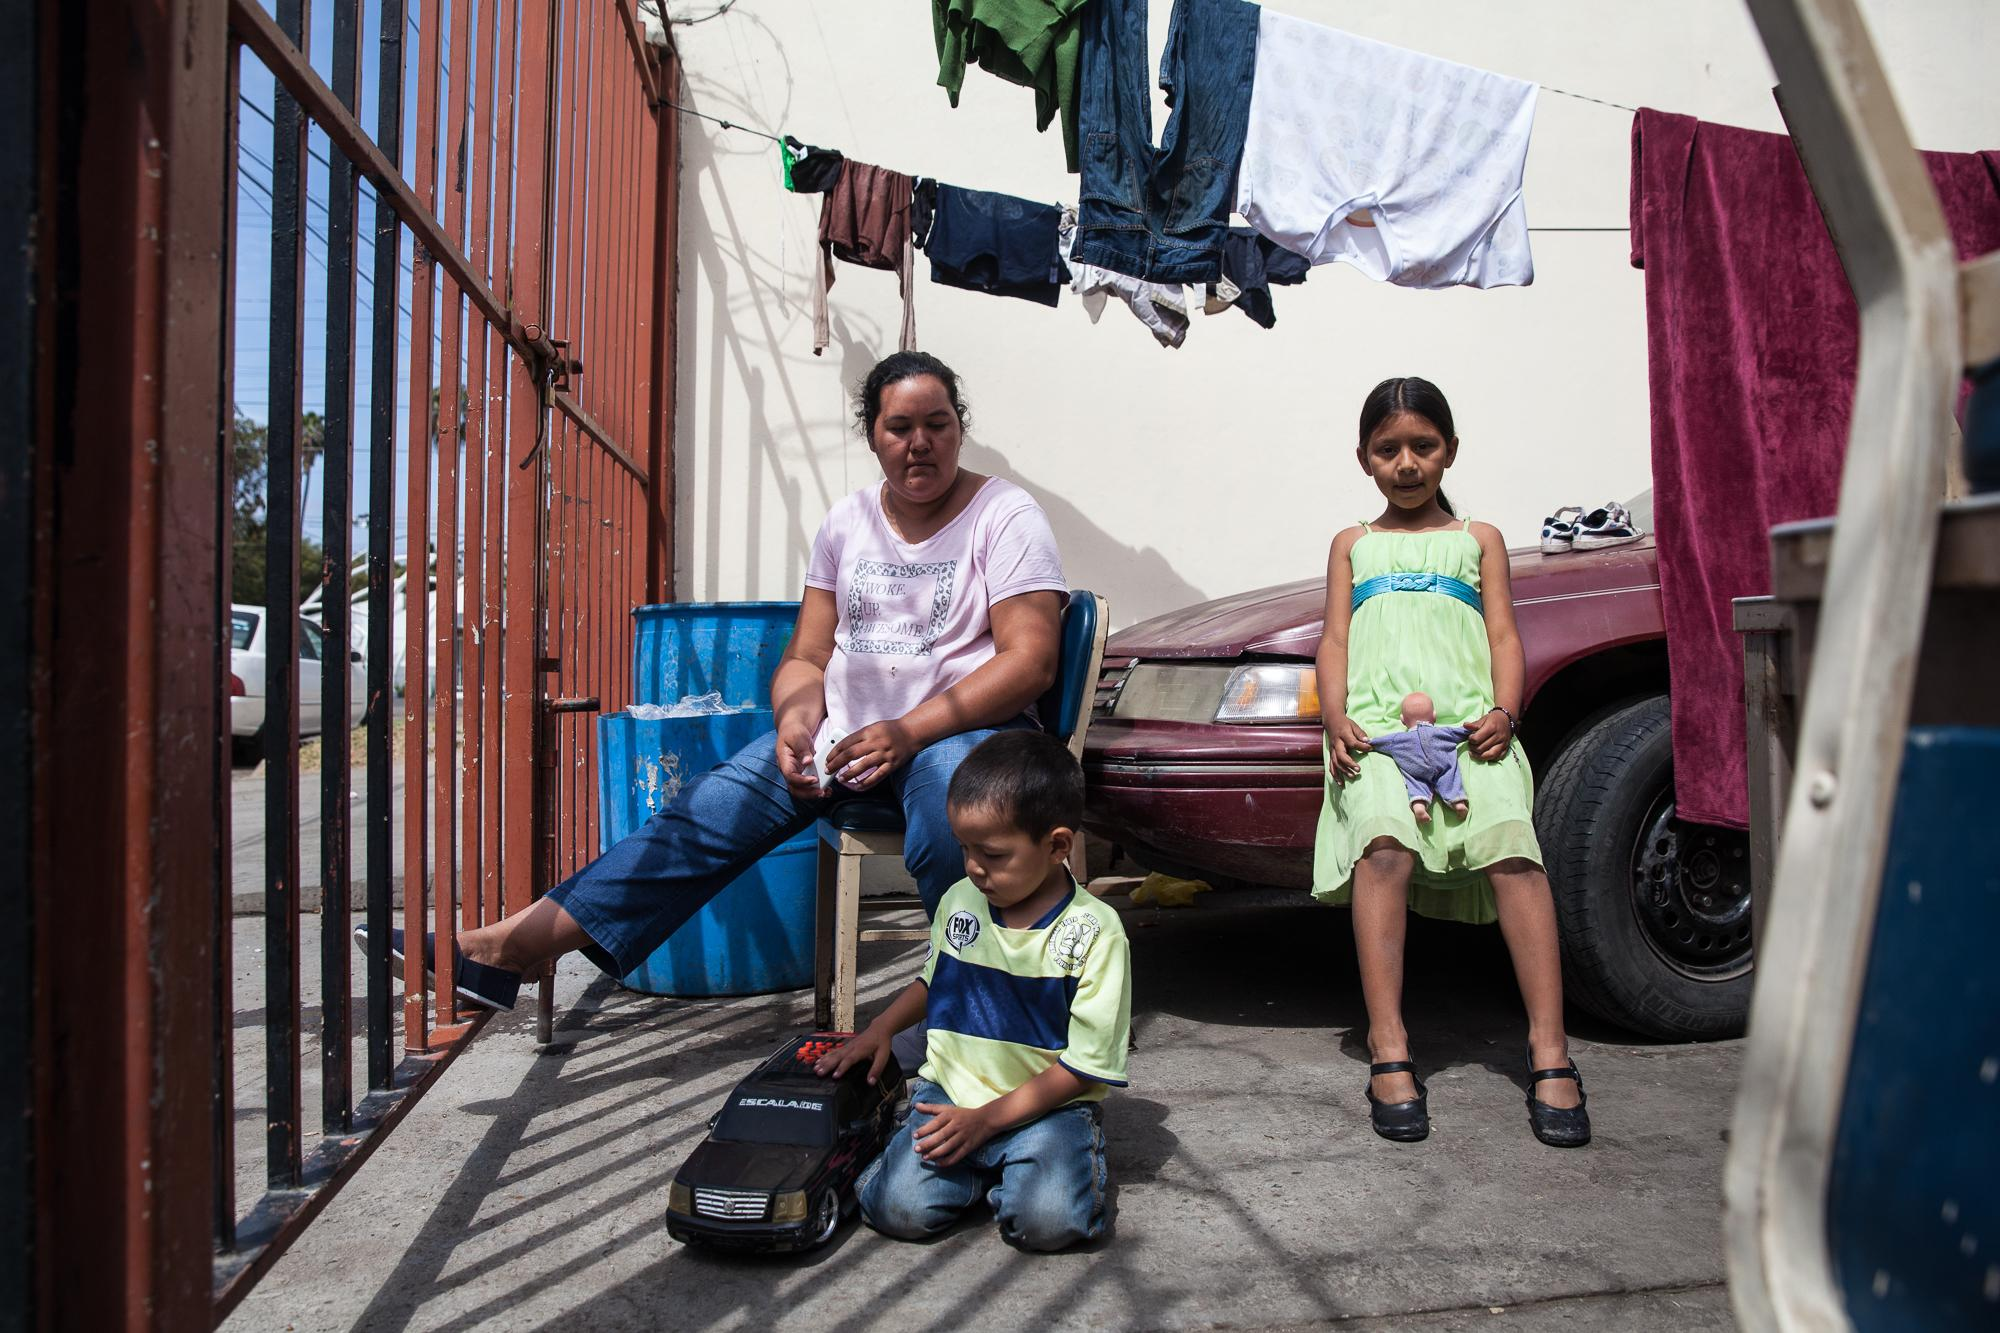 A family sits outside of the Viña de Cristo shelter on the edge of the red-light district in Tijuana, MX, on April 26, 2018.